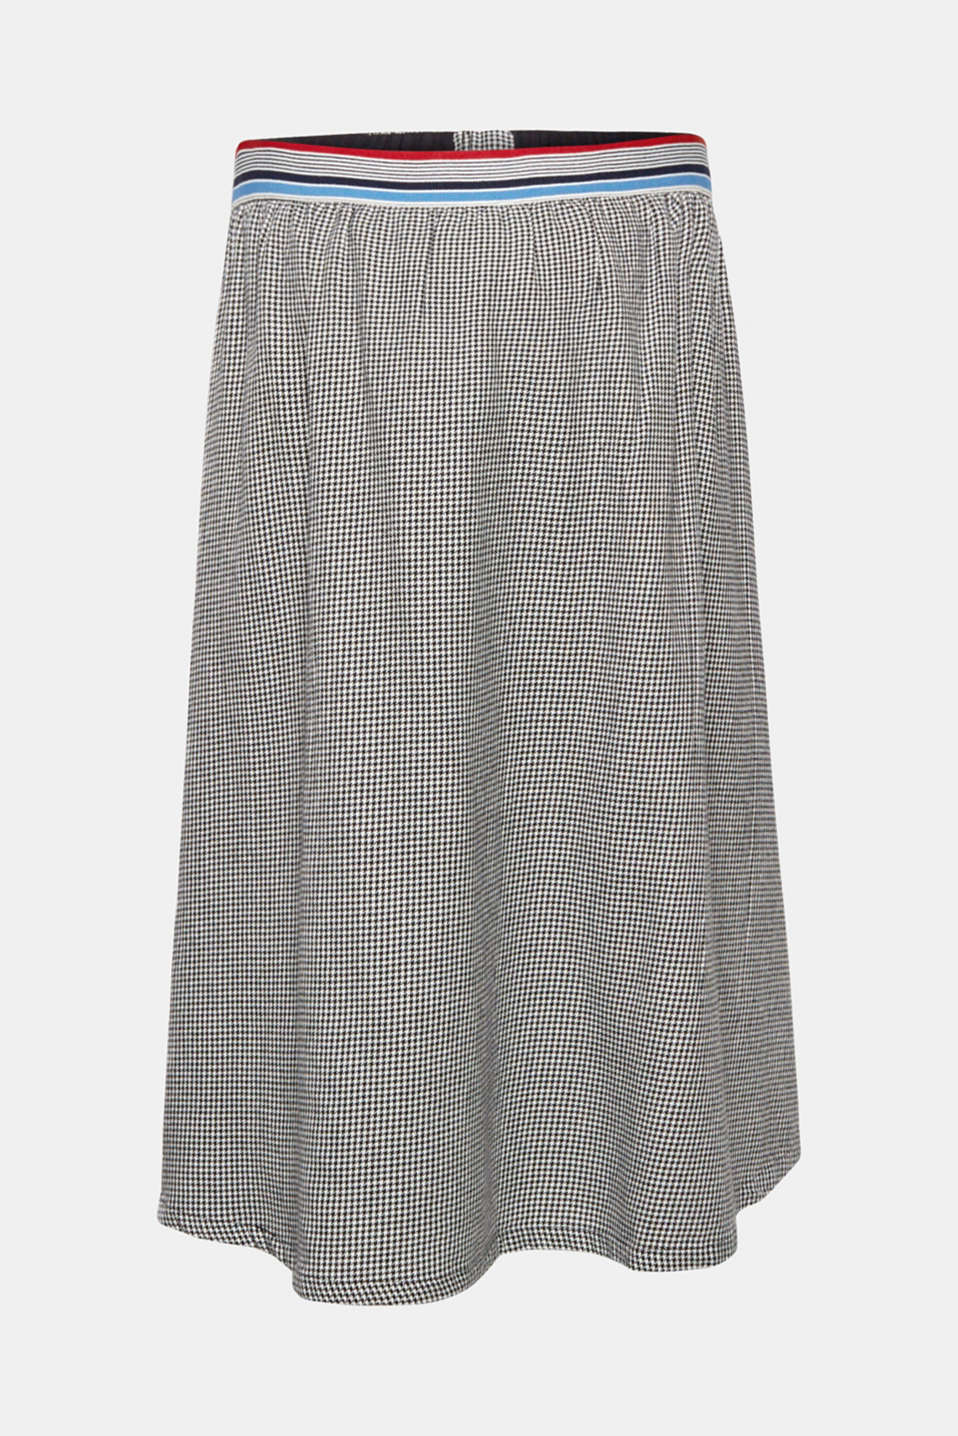 Houndstooth skirt with elasticated waistband, 100% cotton, LCBLACK, detail image number 0